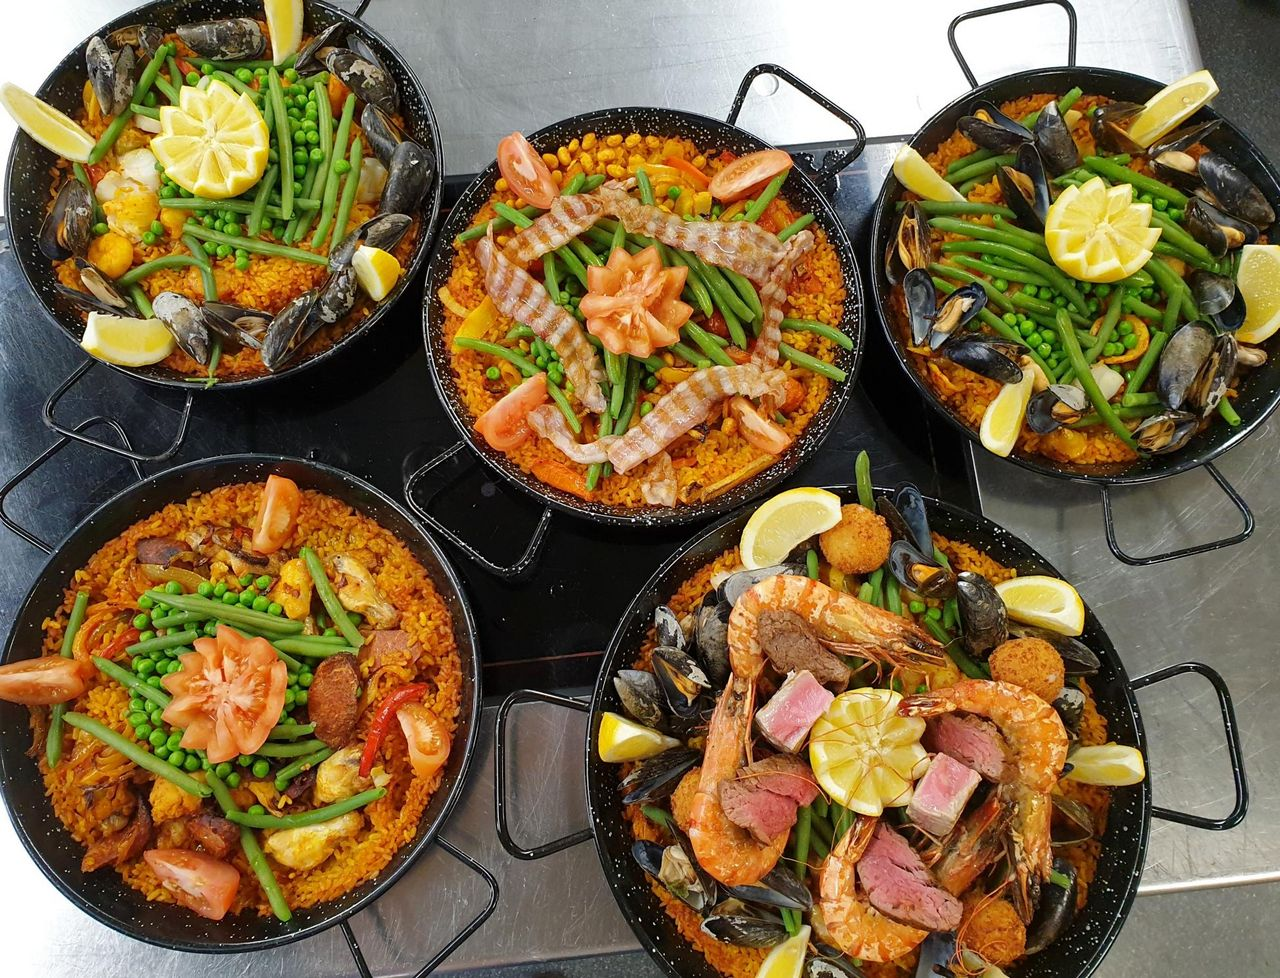 Cooking class: Tapas, Paellas y Crema Catalana